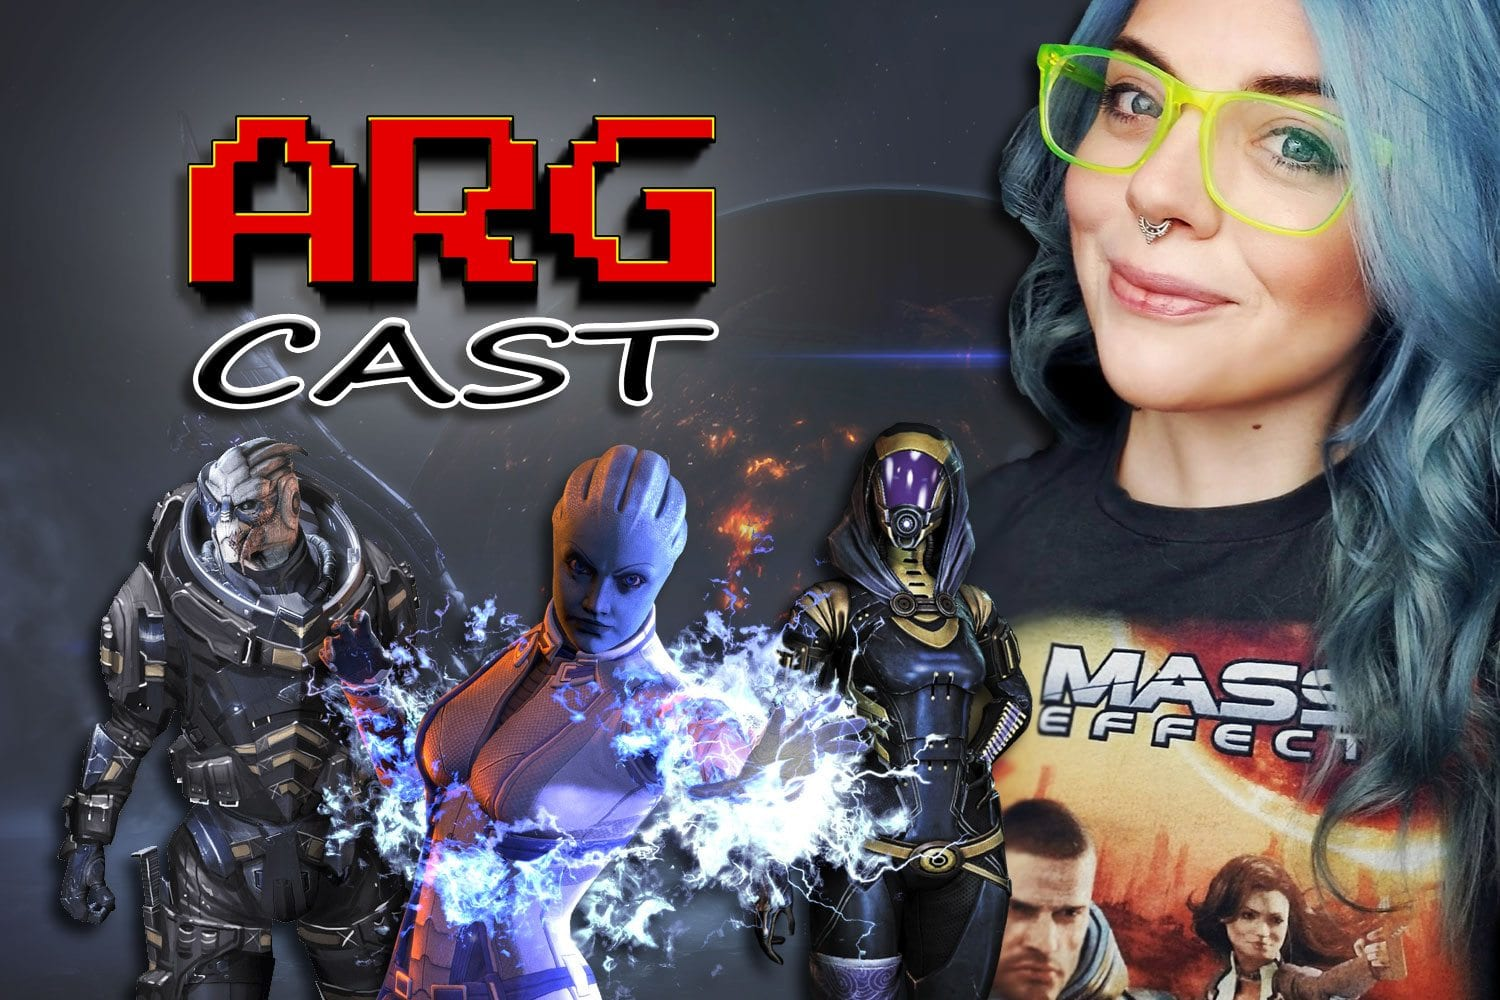 ARGcast #86: The Impact of Mass Effect with Liana Ruppert